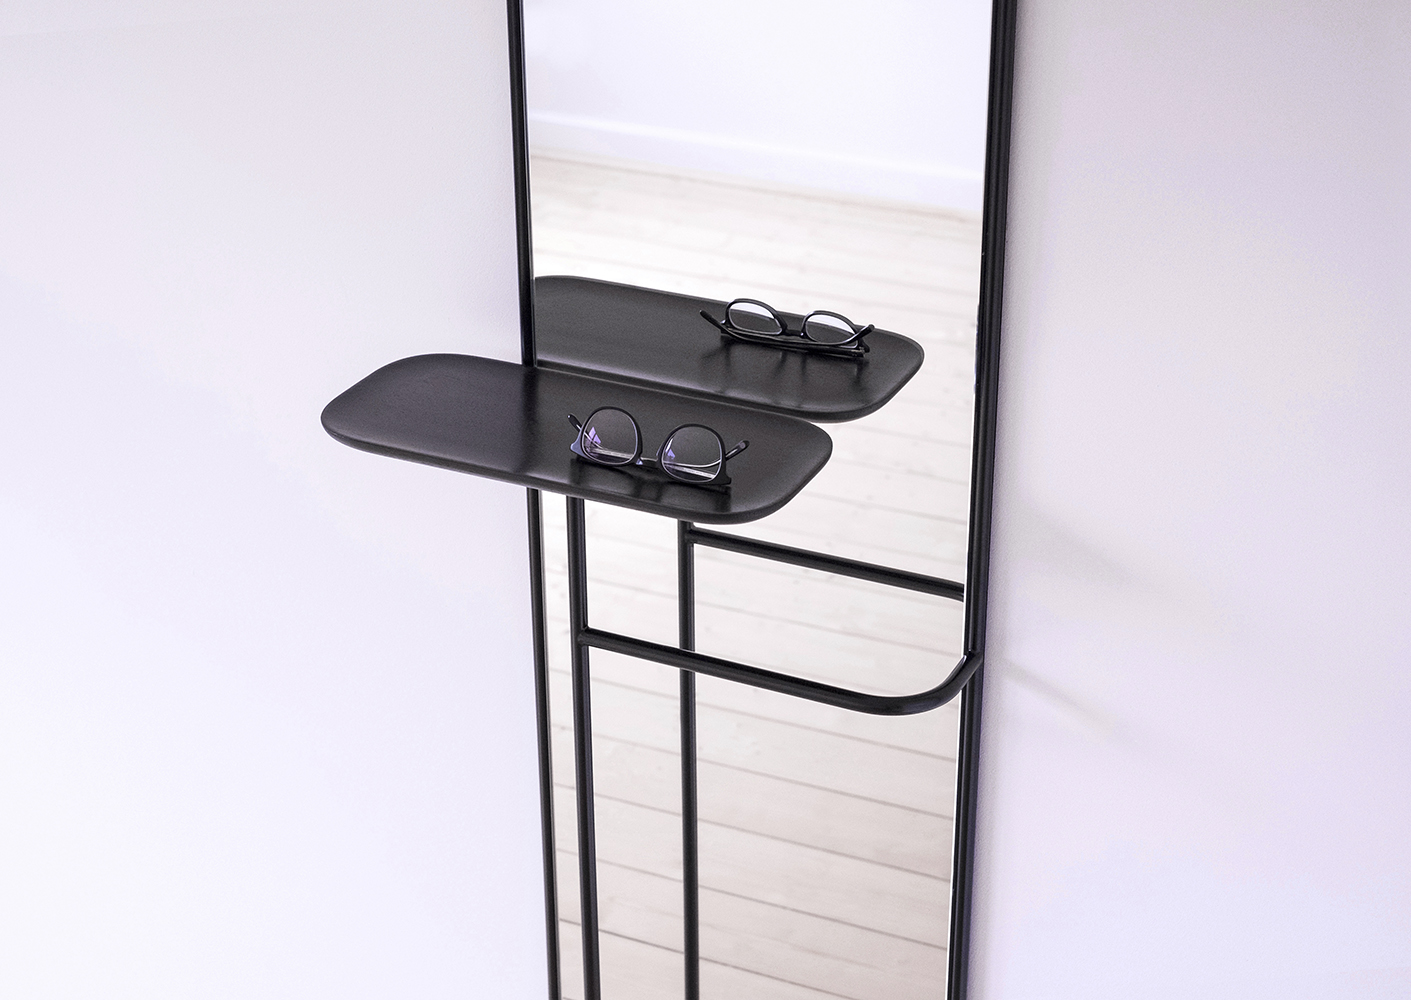 Caussa_ConciergeMirror_BlackSteelGlass5